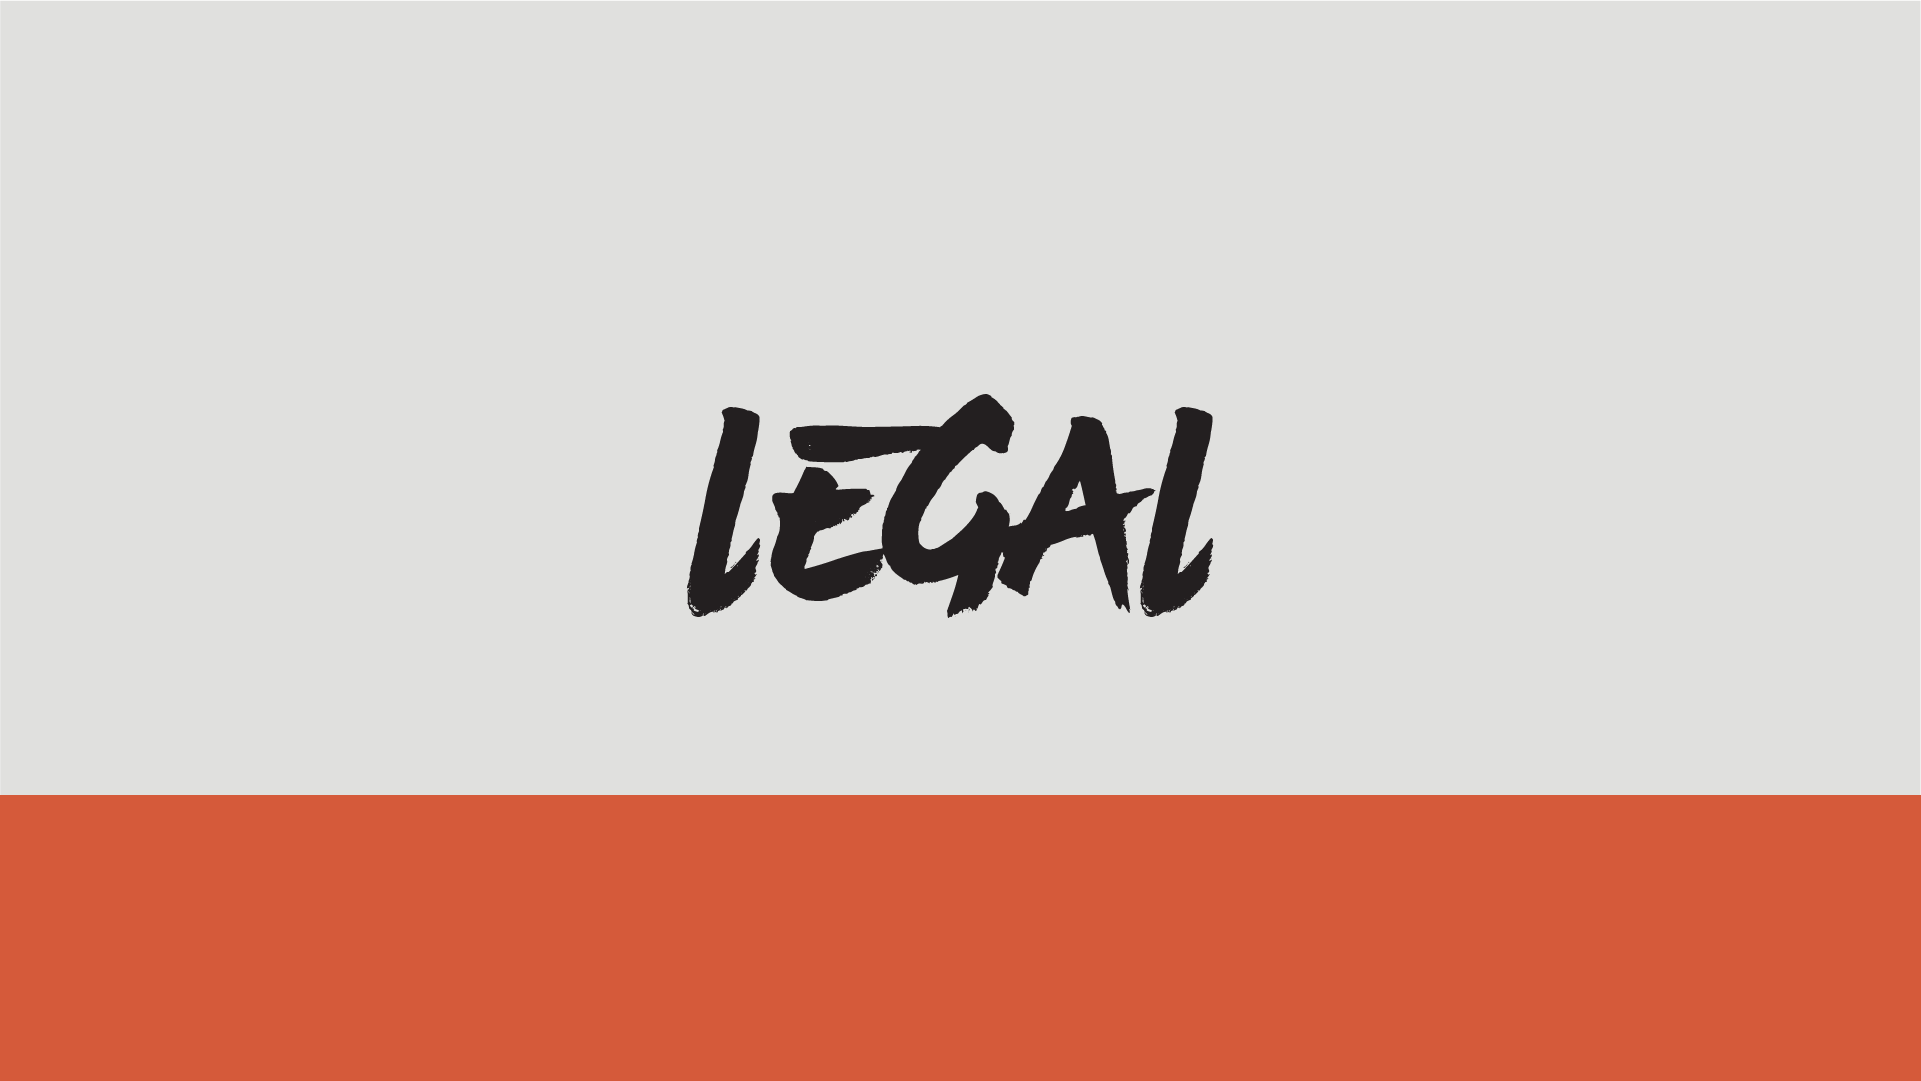 legal heart driven small business course